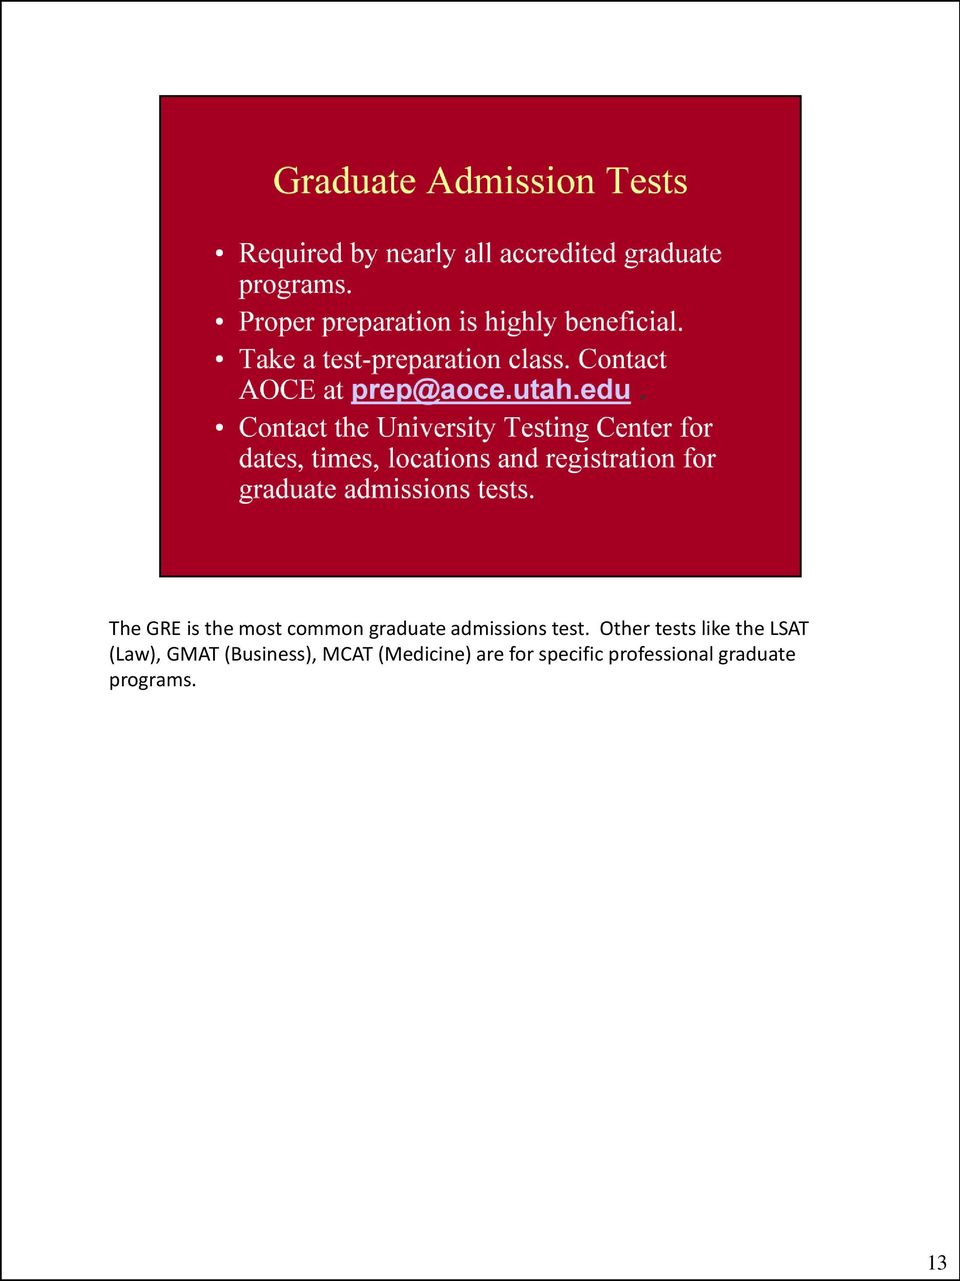 Other tests like the LSAT (Law), GMAT